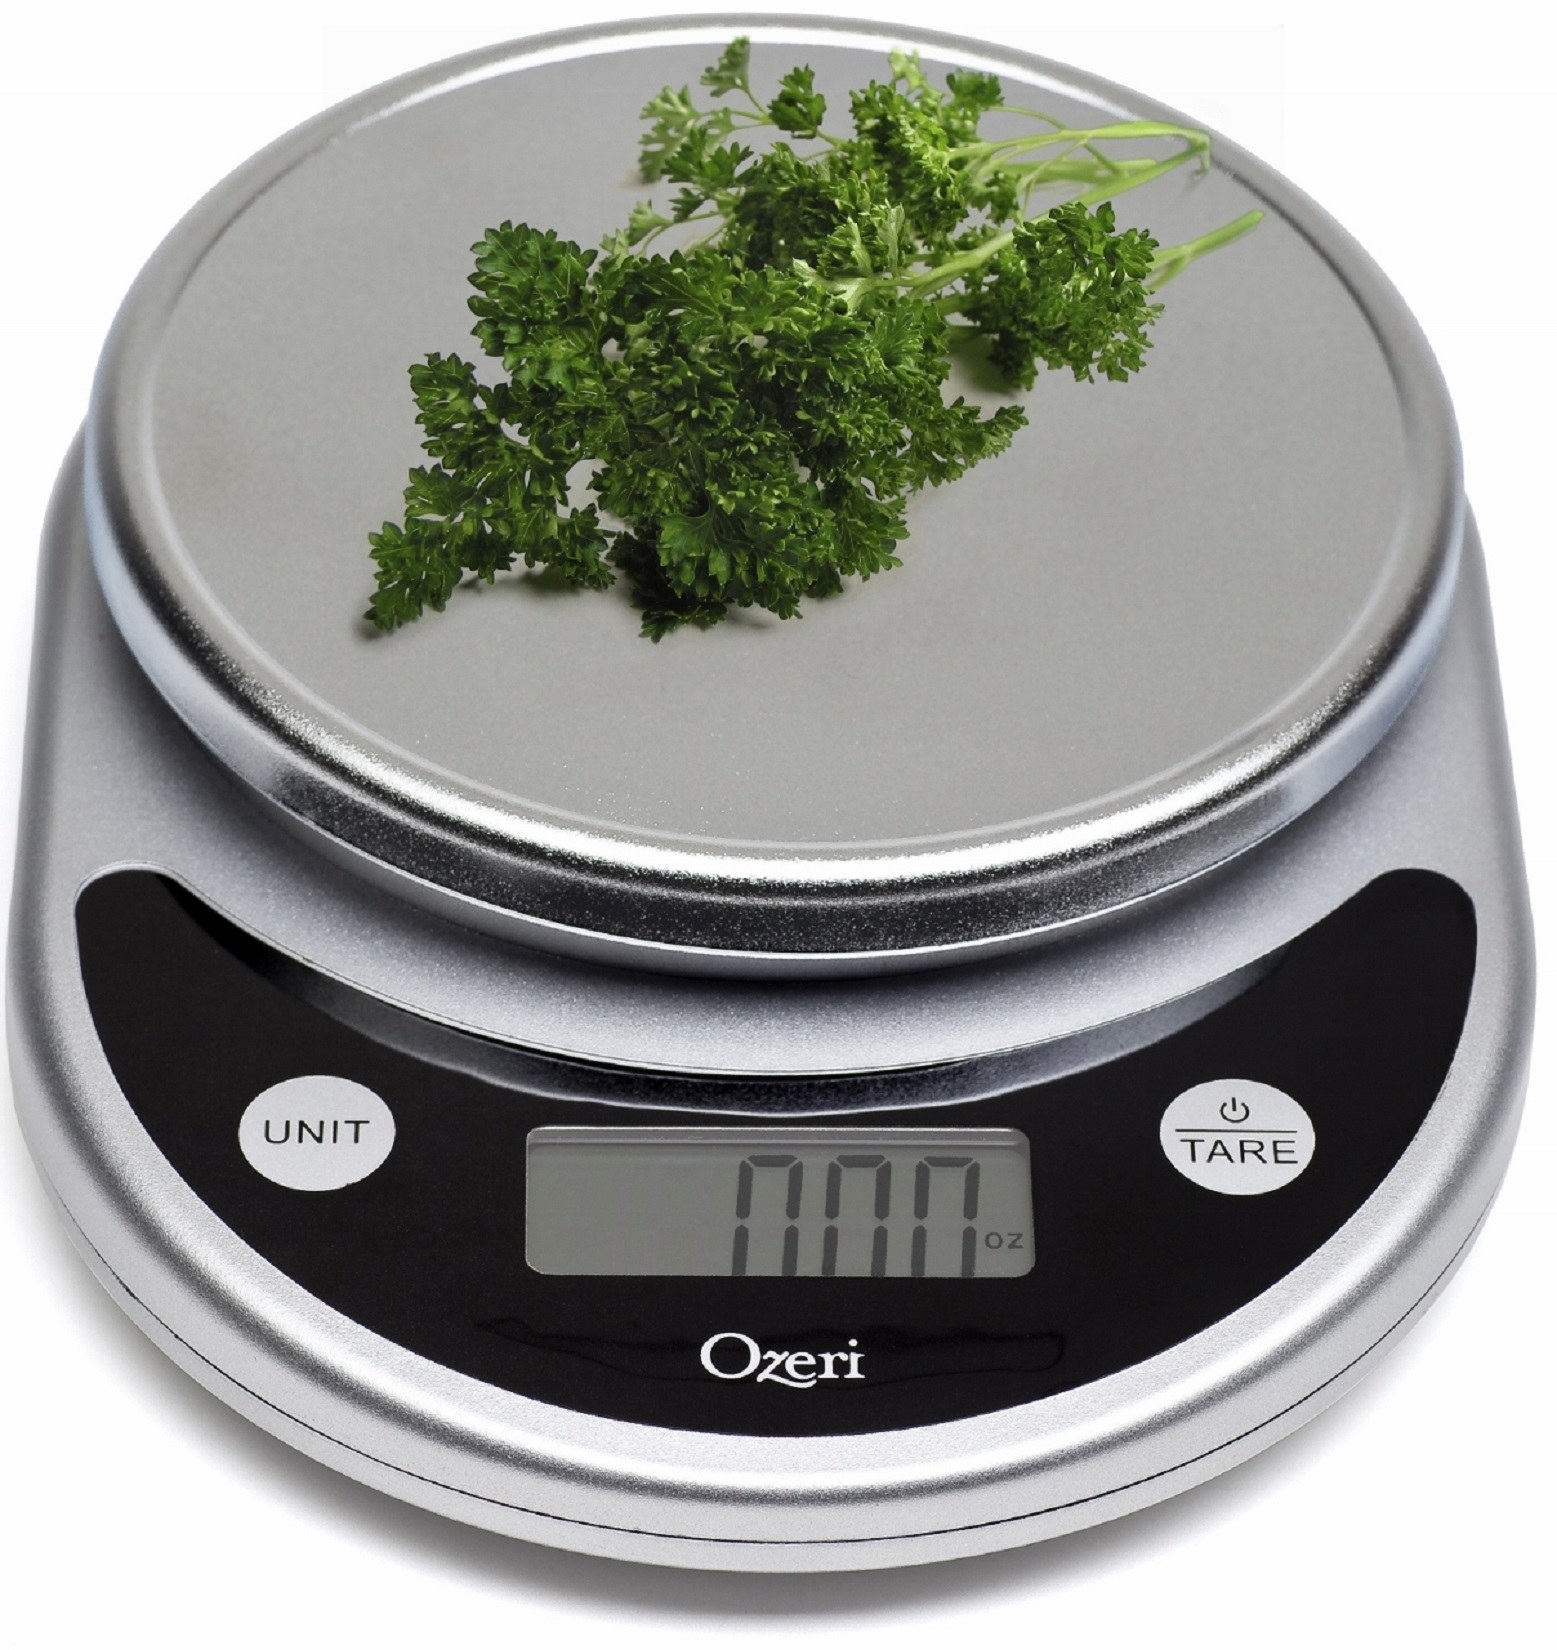 The silver scale with a sprig of parsley